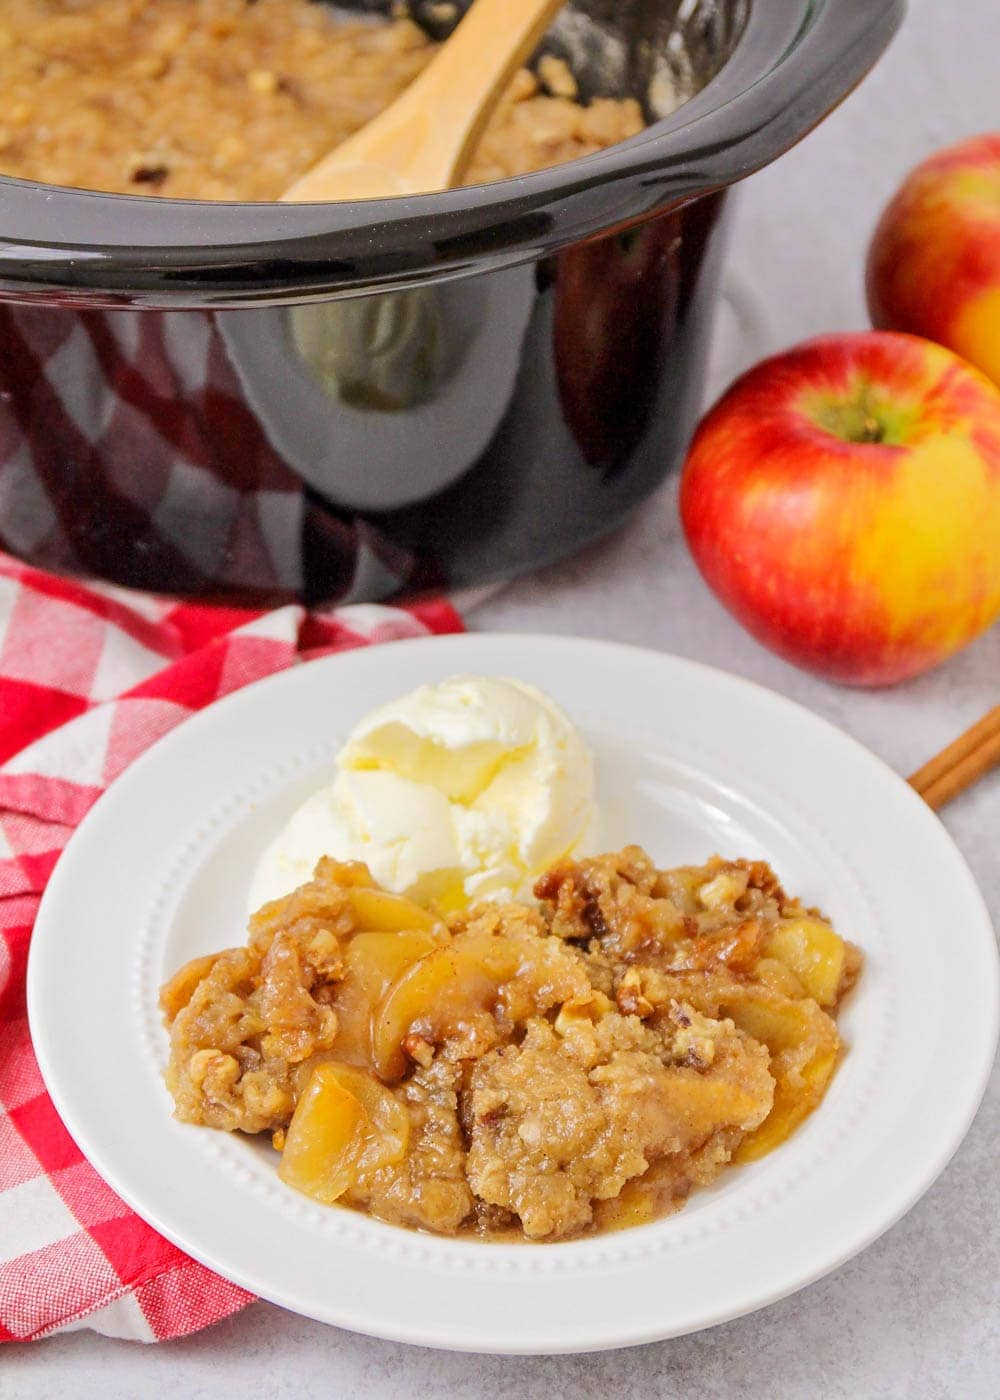 Crock pot apple crisp recipe in bowl